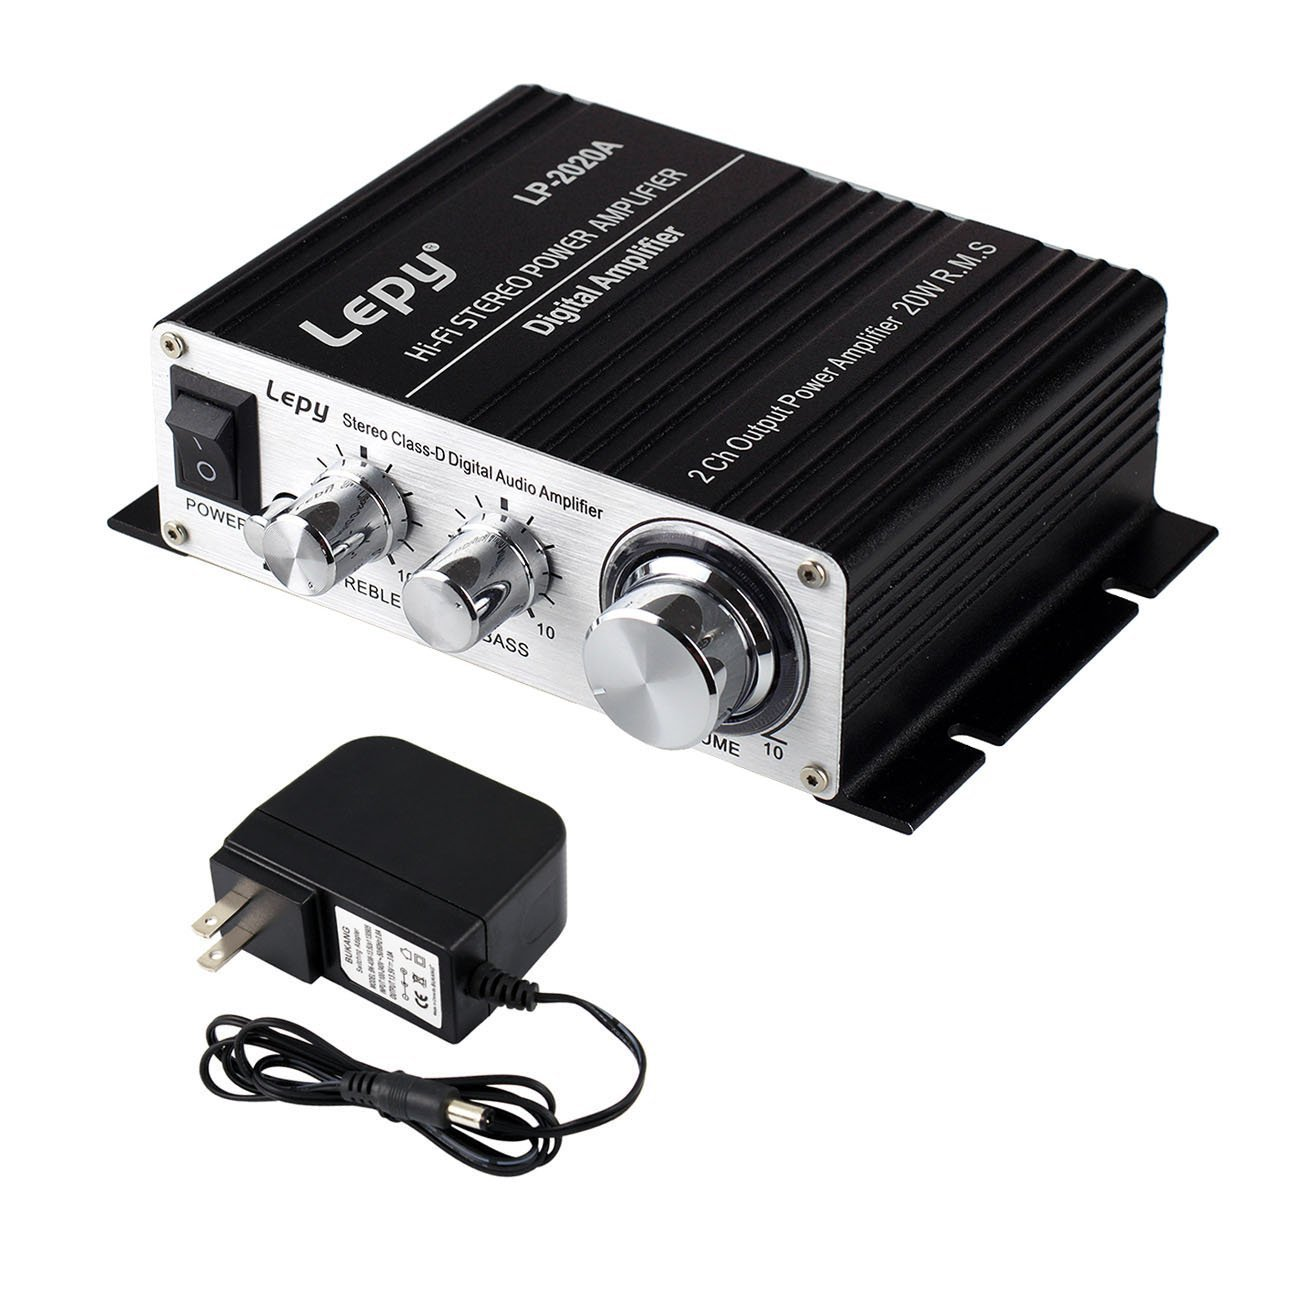 Lepy LP-2020A Power Amplifier Stereo HiFi Digital Audio Car Auto Motor Amp